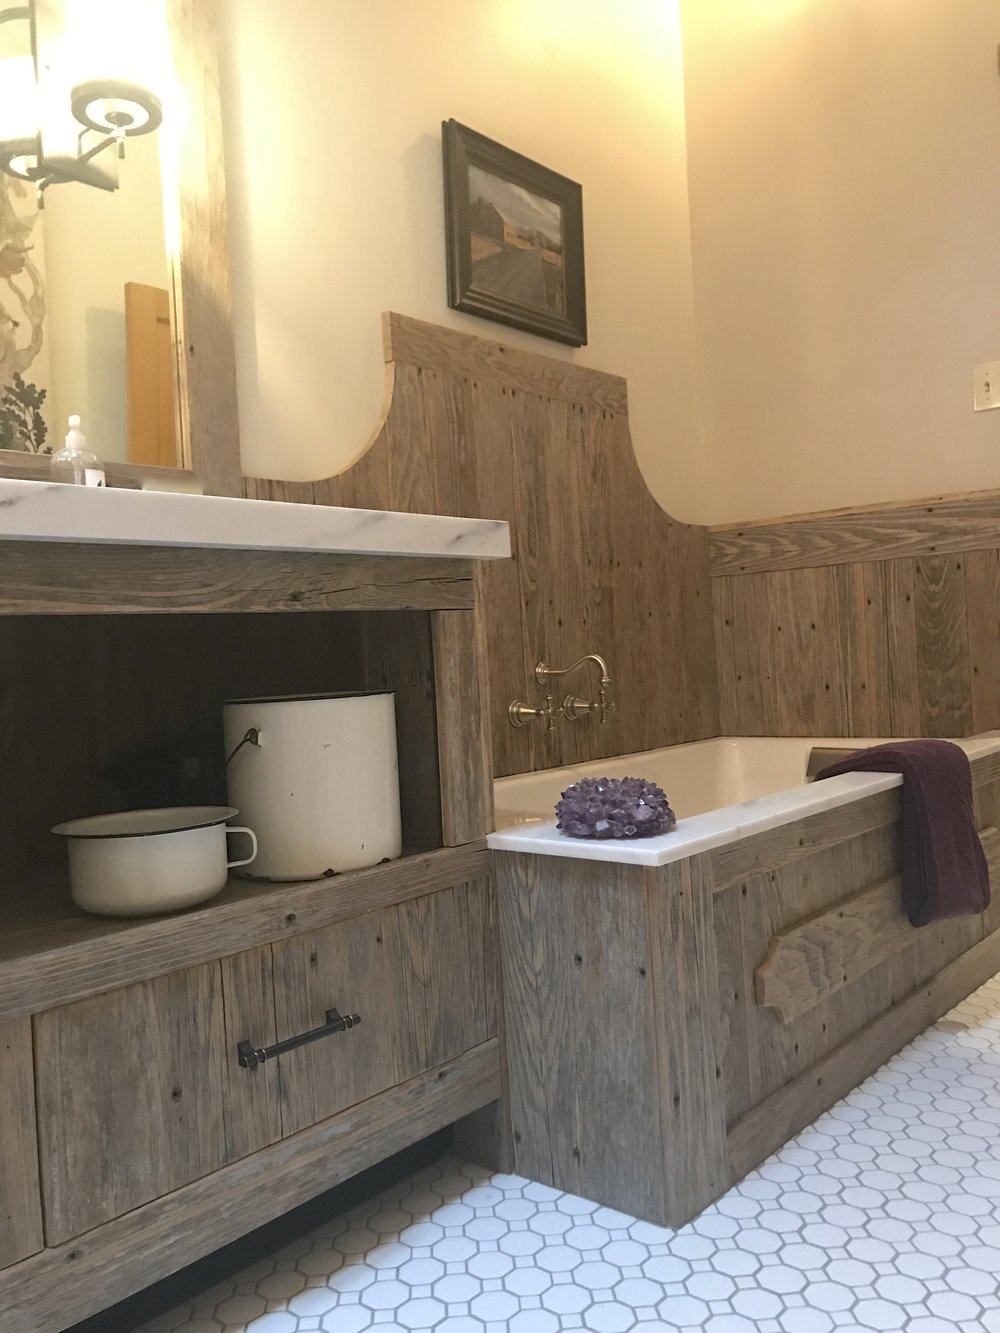 The vanity and tub surround are re-purposed from old cedar dock wood.